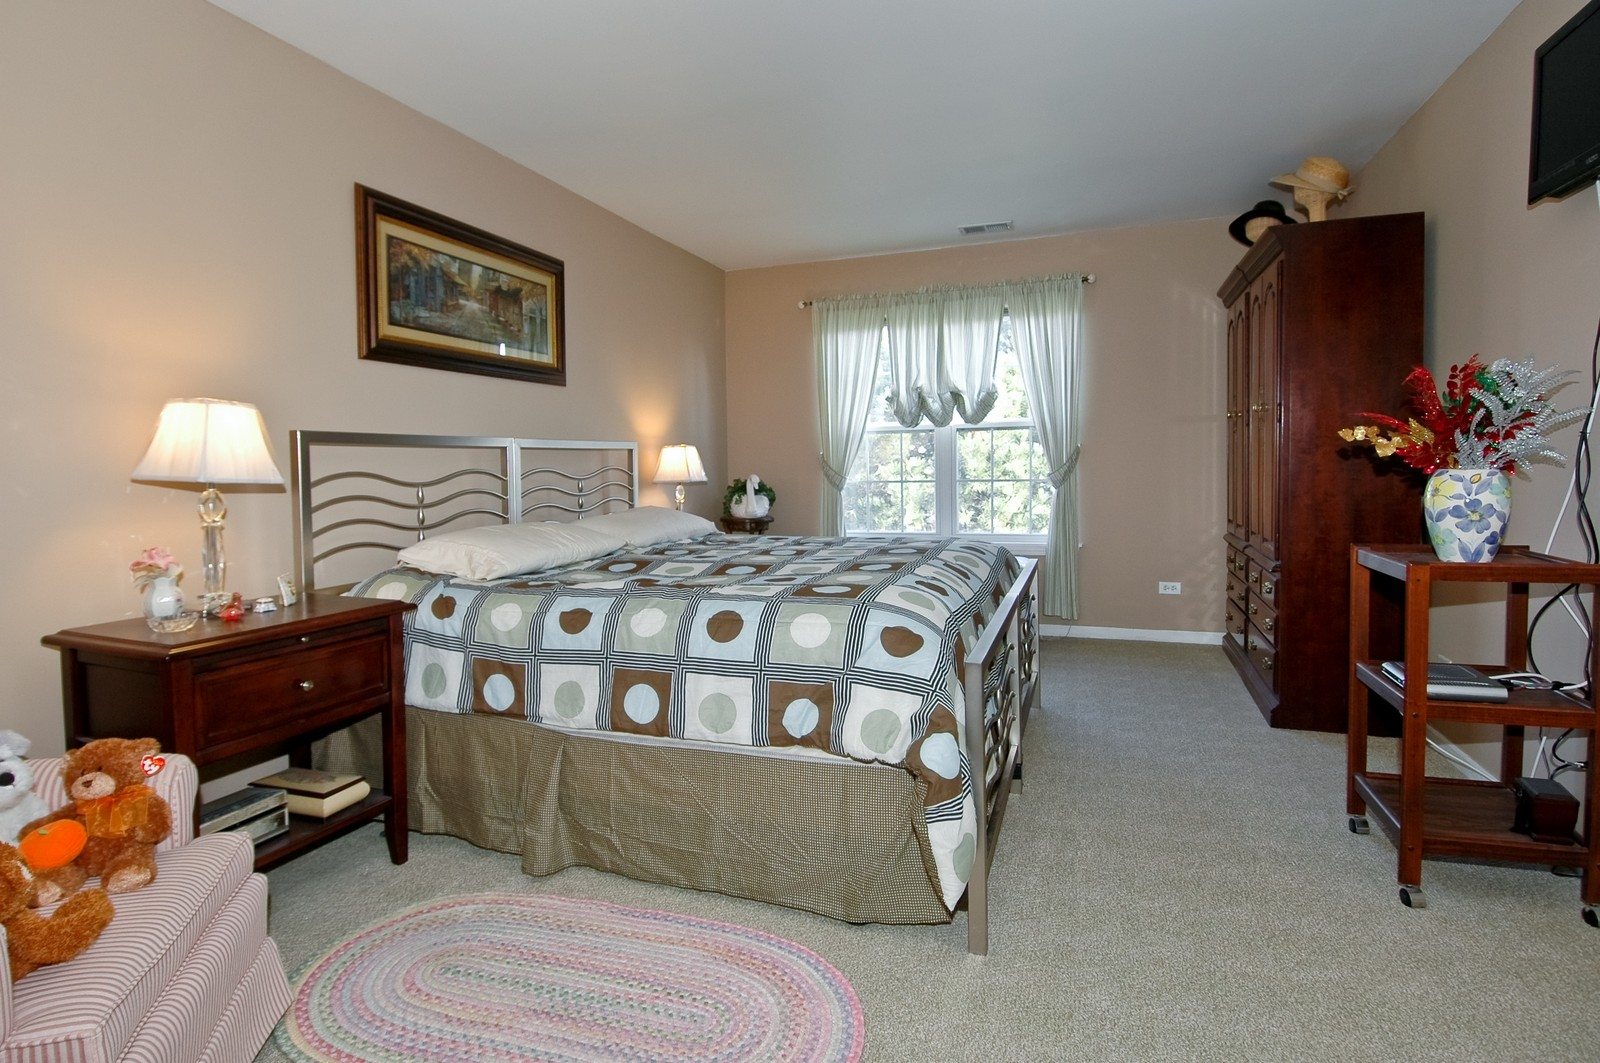 Real Estate Photography - 346 Crystal Ridge, Crystal Lake, IL, 60014 - Master Bedroom